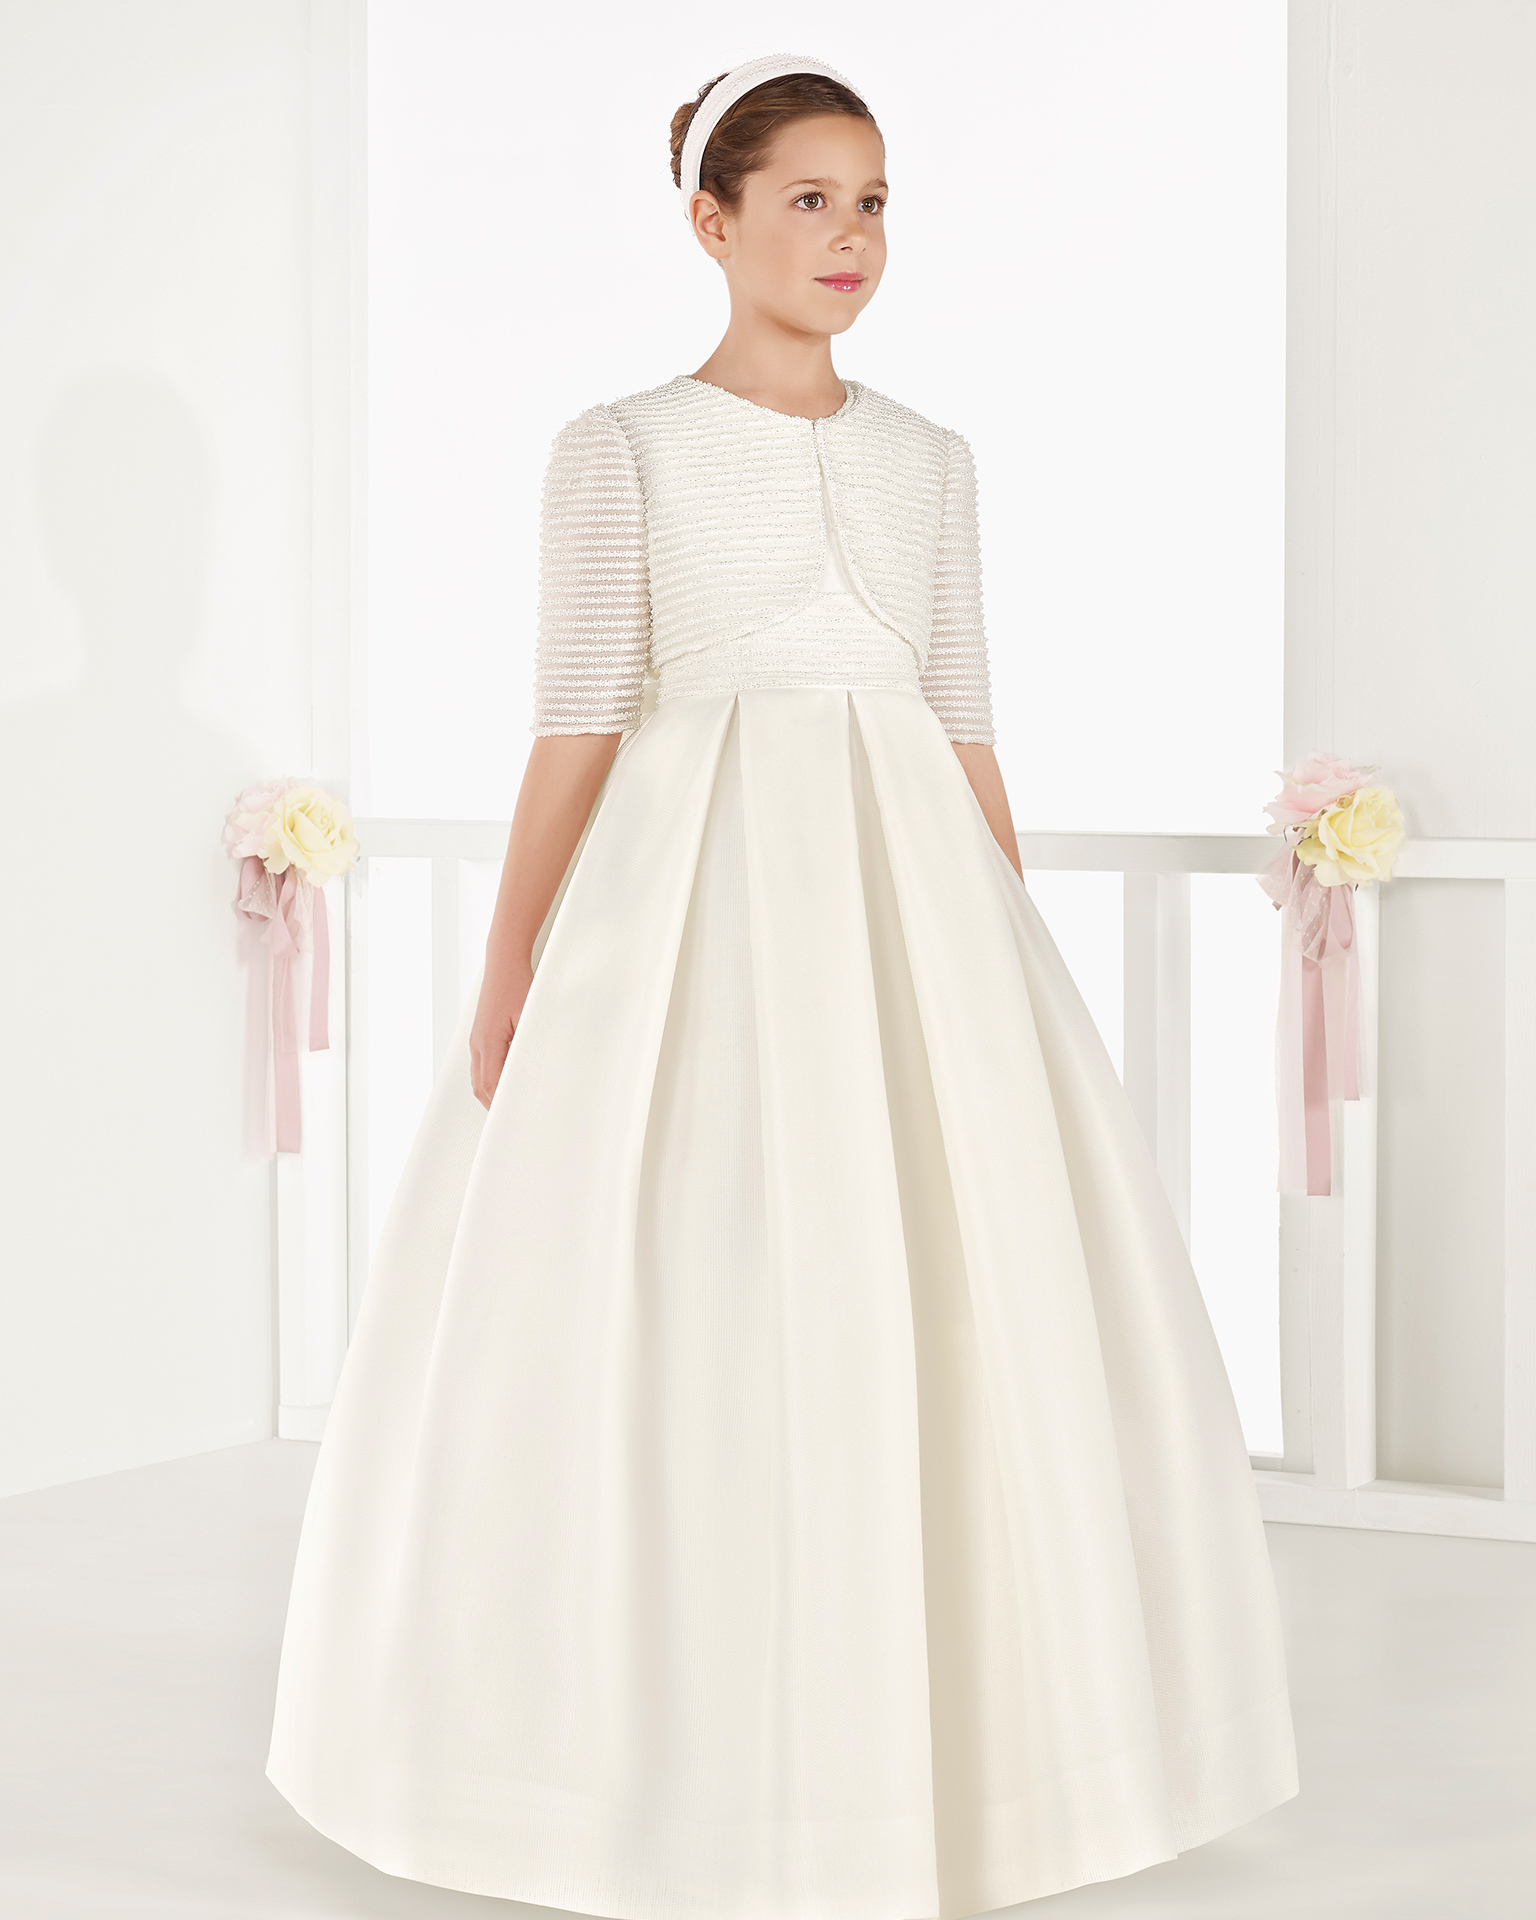 Classic basketweave silk First Communion dress with empire waist, in ivory. 2018 AIRE COMUNION Collection.